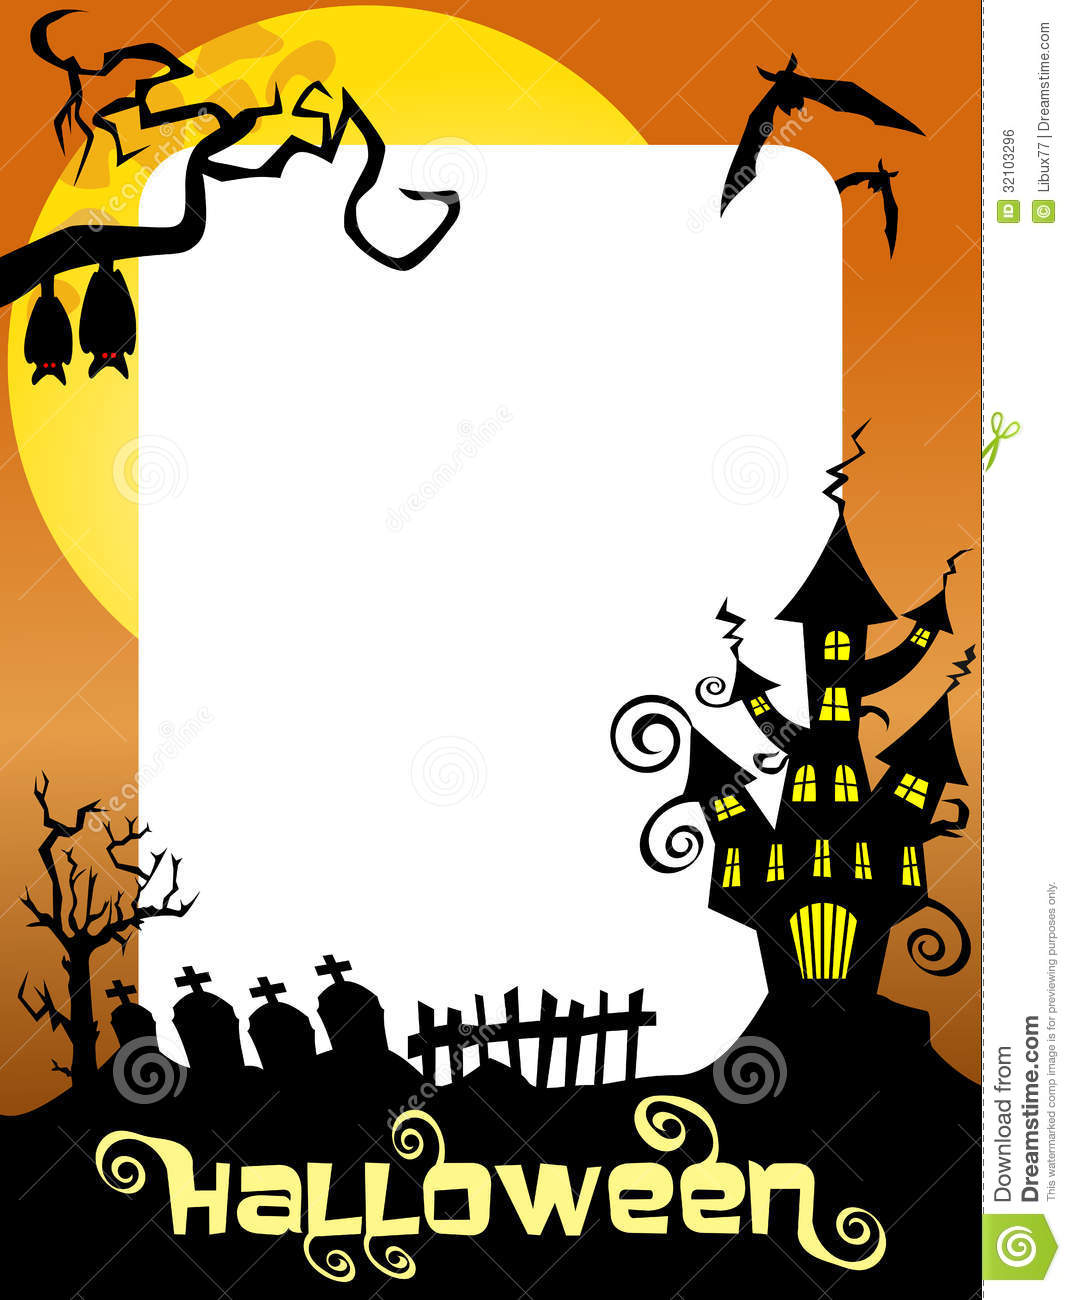 Halloween Photo Frame Ghost Castle Stock Vector - Illustration of ...